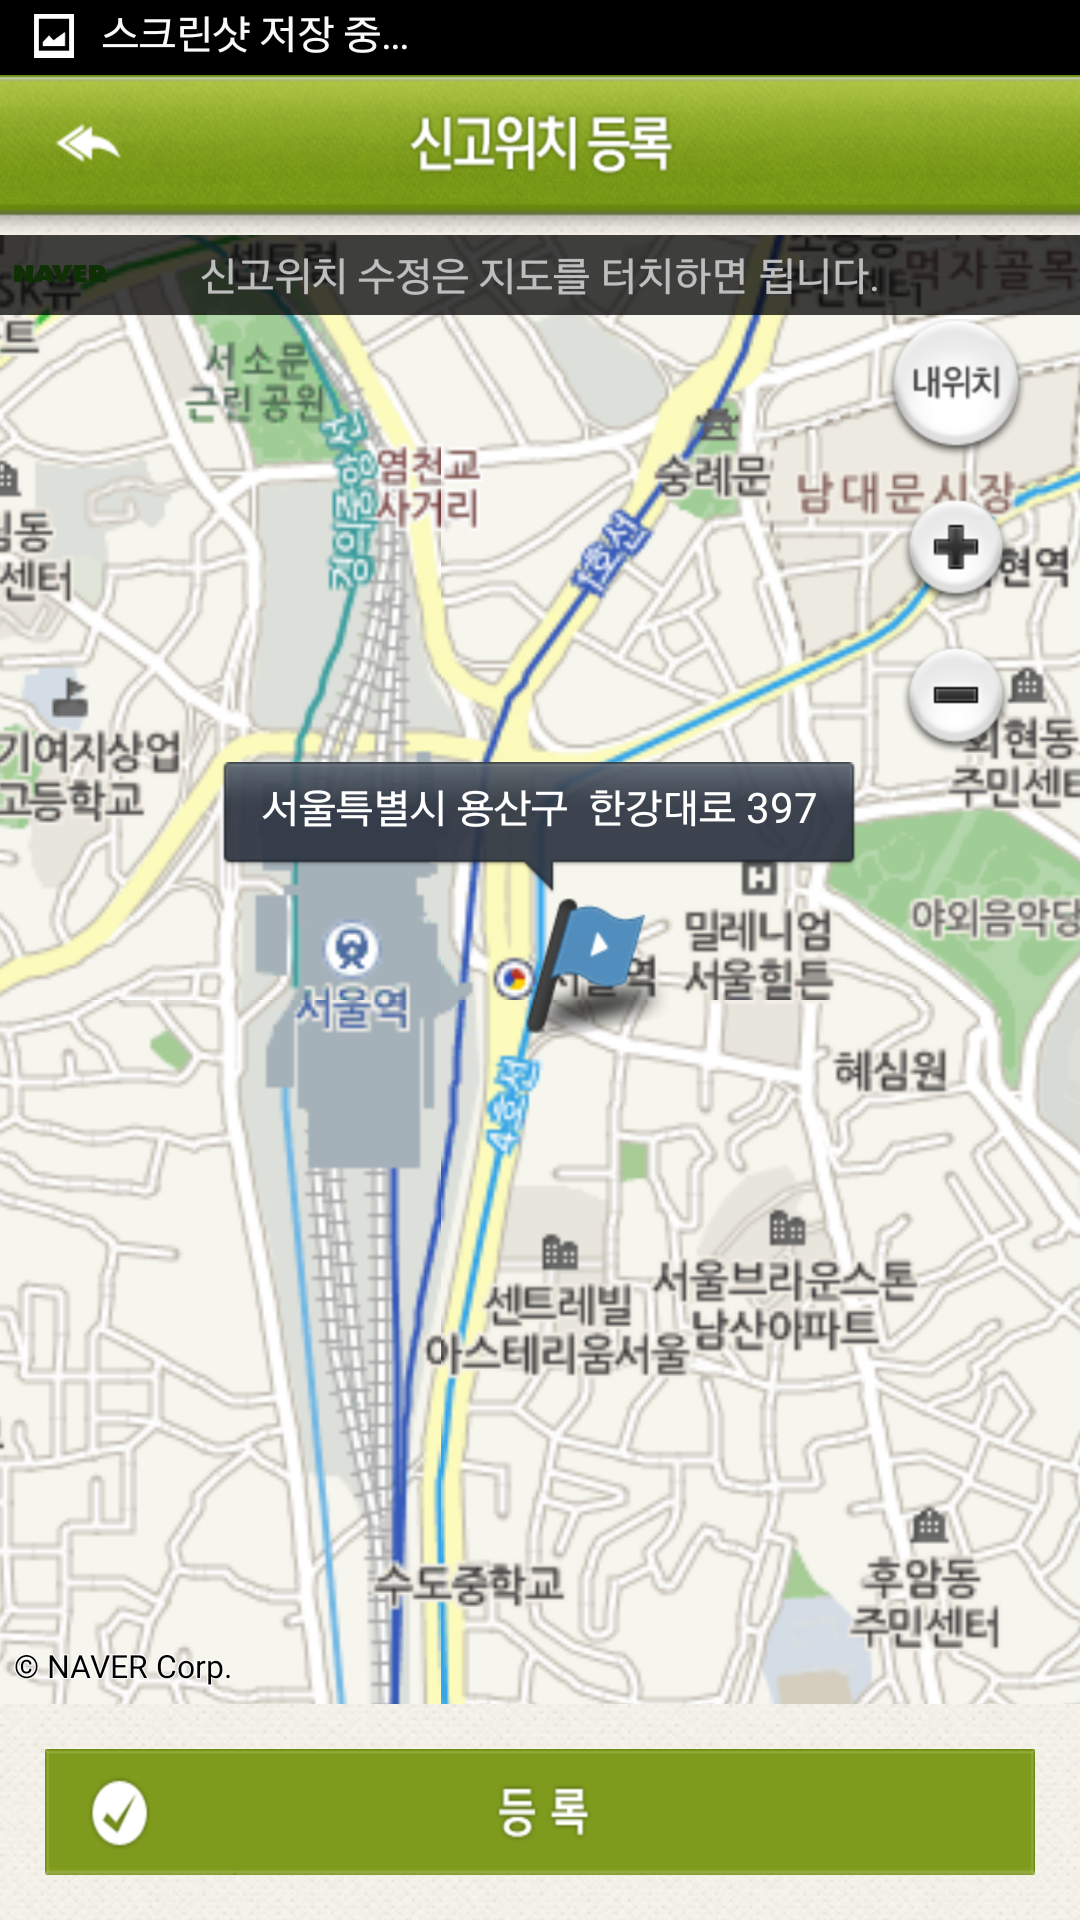 Seoul Report Illegal Parked Cars